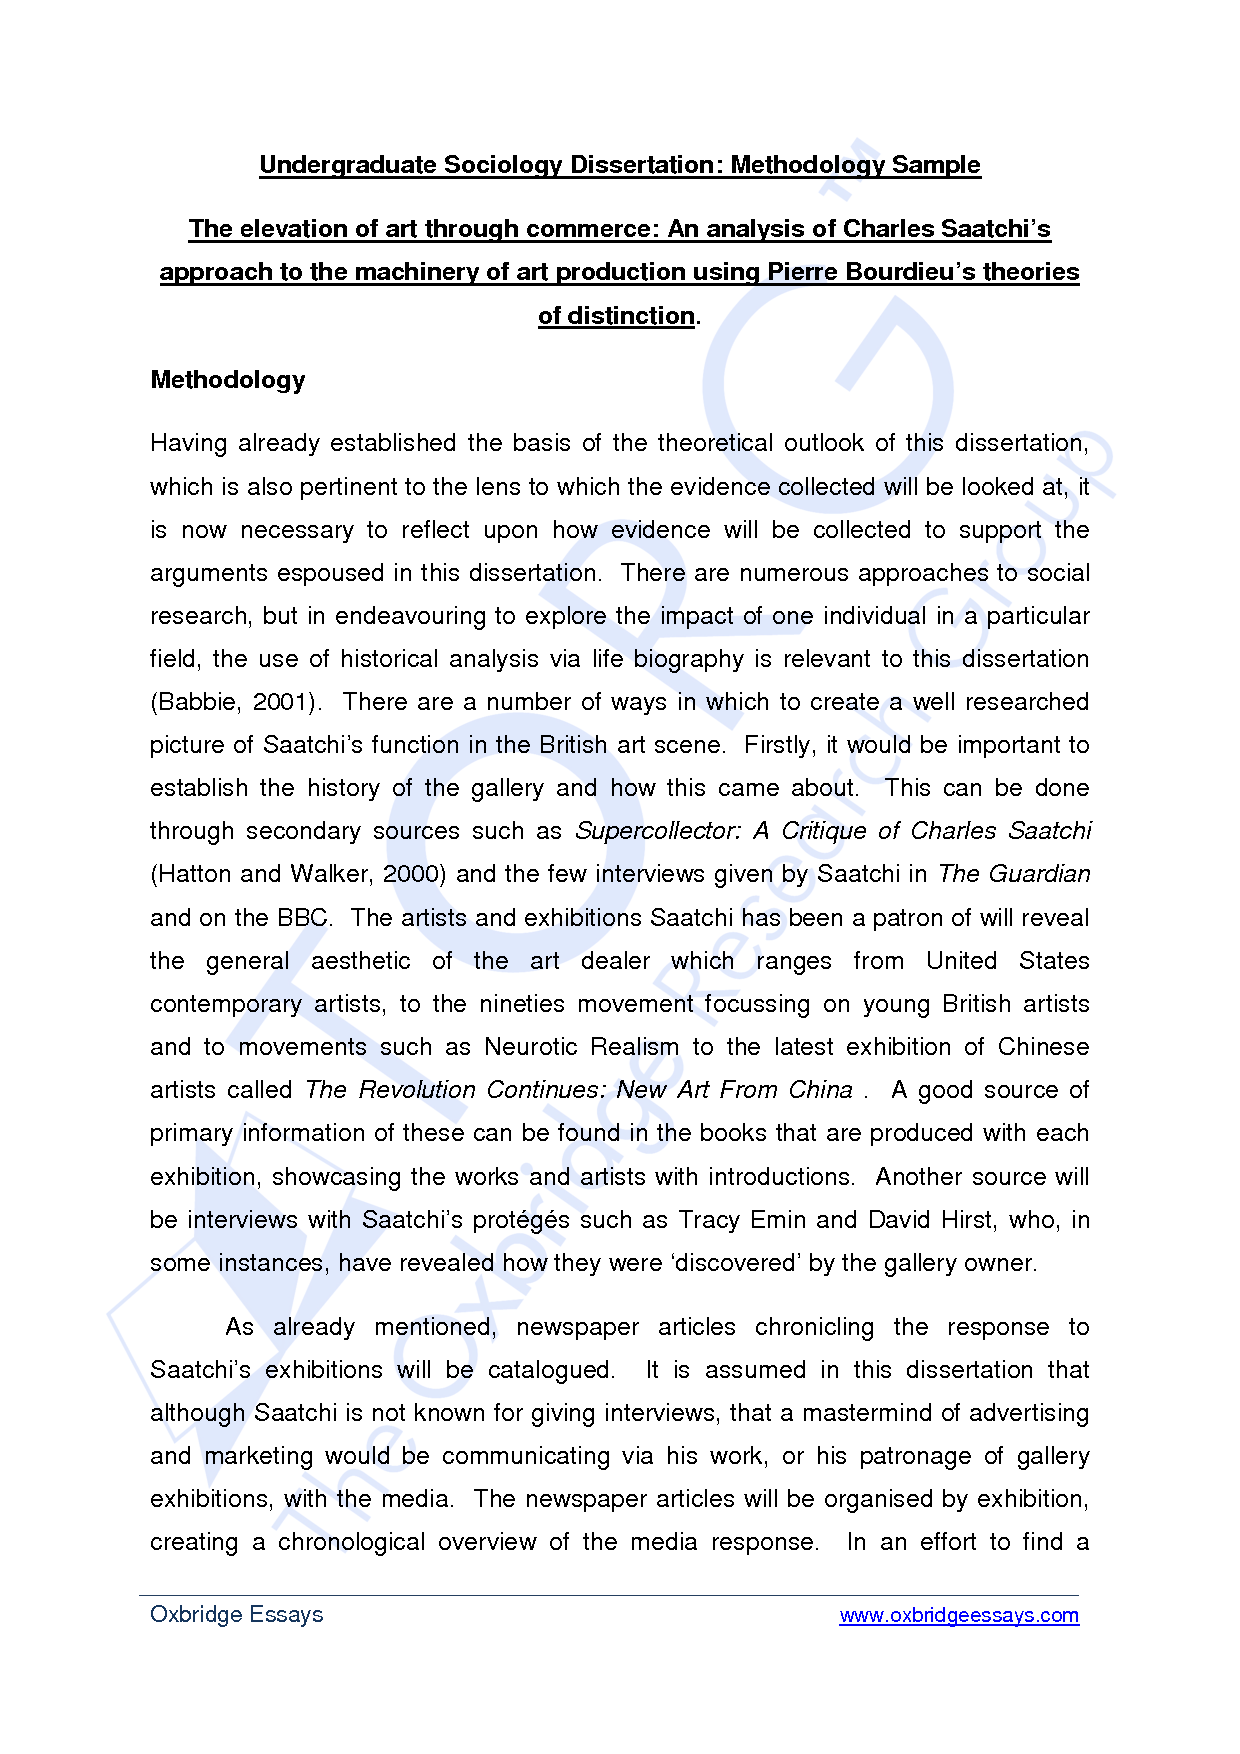 Dissertation writing for payment methodology section